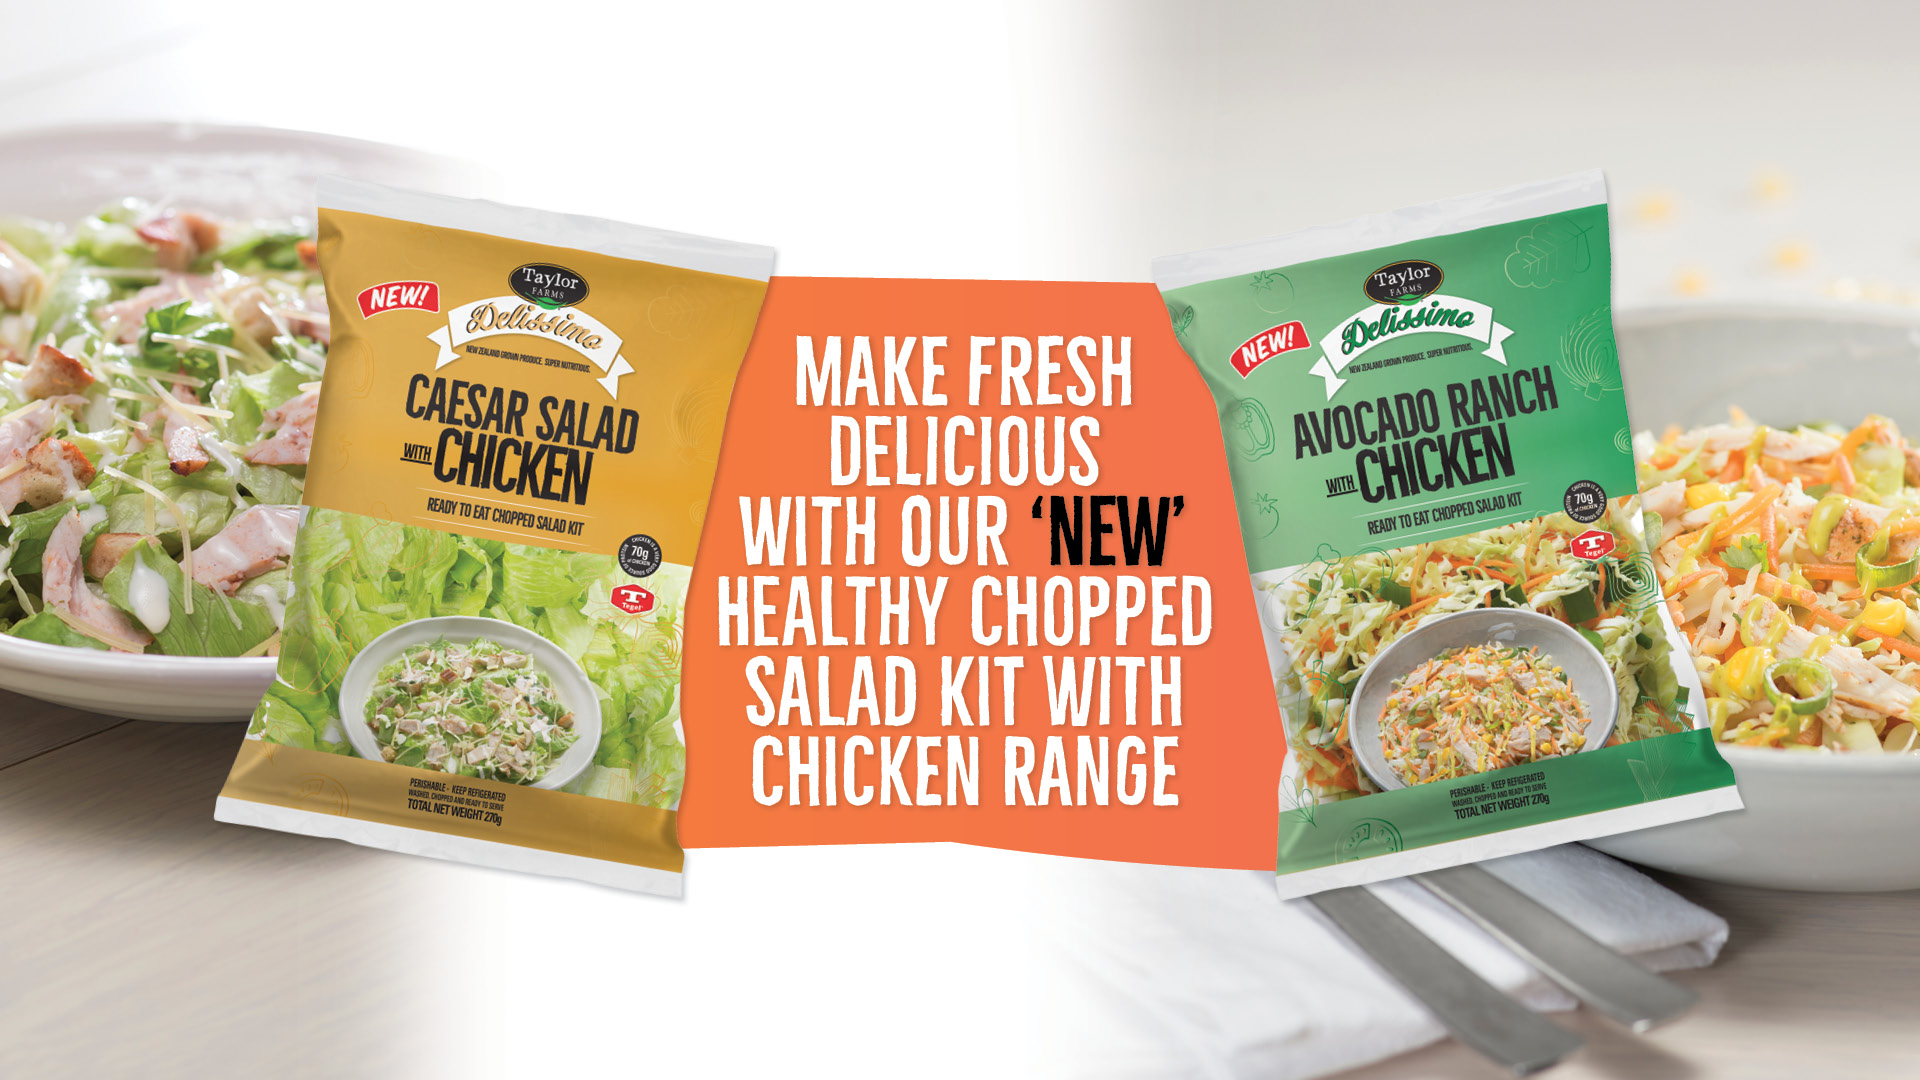 Make fresh delicious with our new healthy chopped salad kit with chicken range